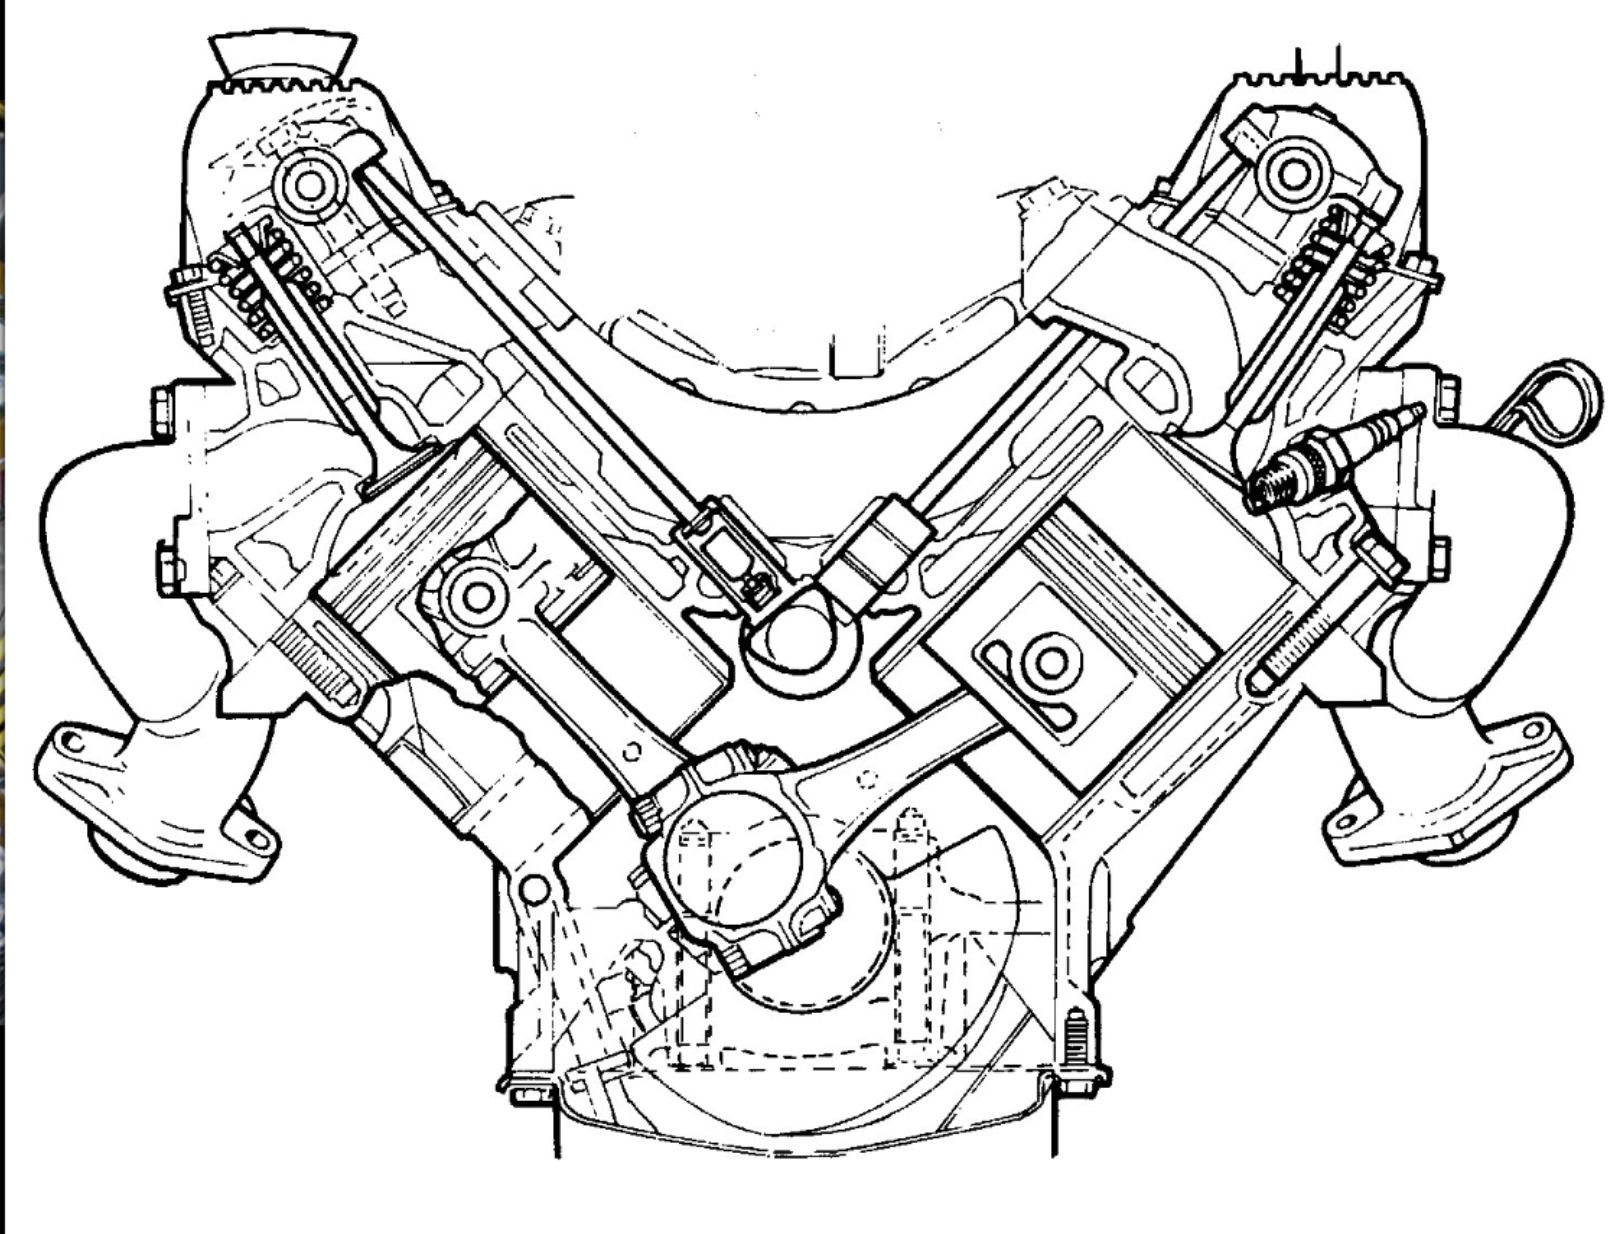 A sectional view of the ROVER V8 engine. A masterpiece of